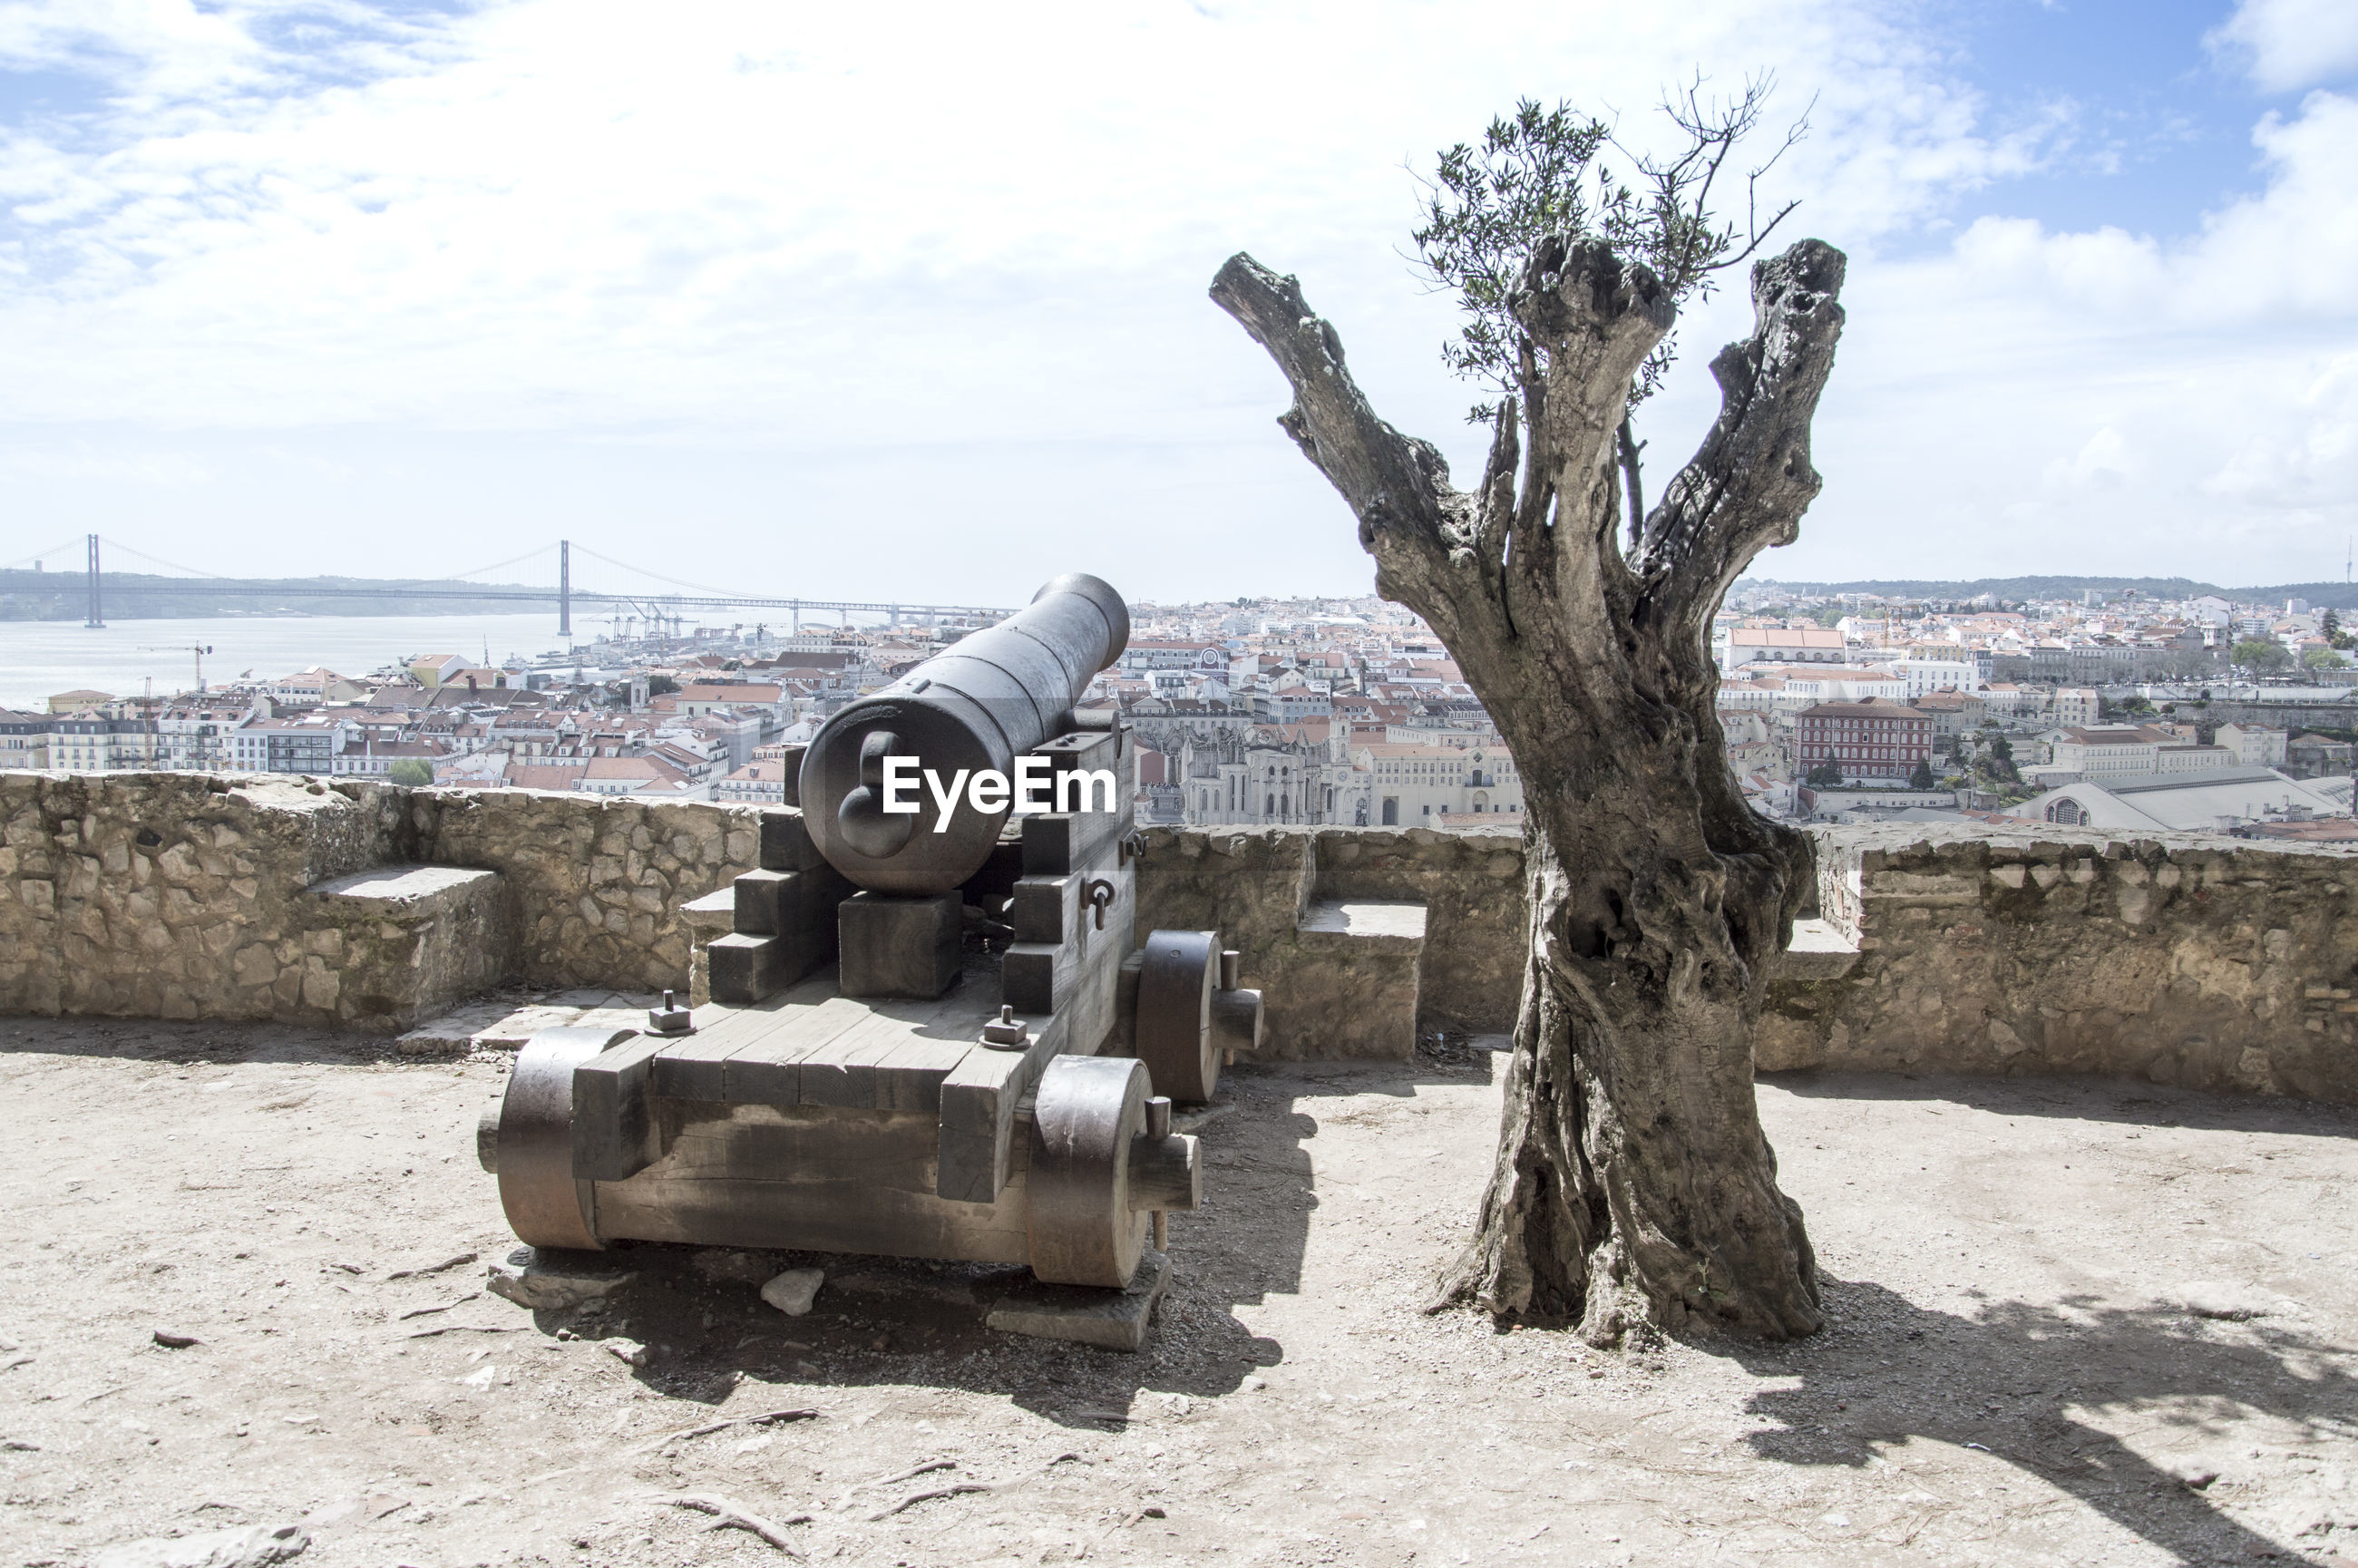 View of tree and cannon against sky